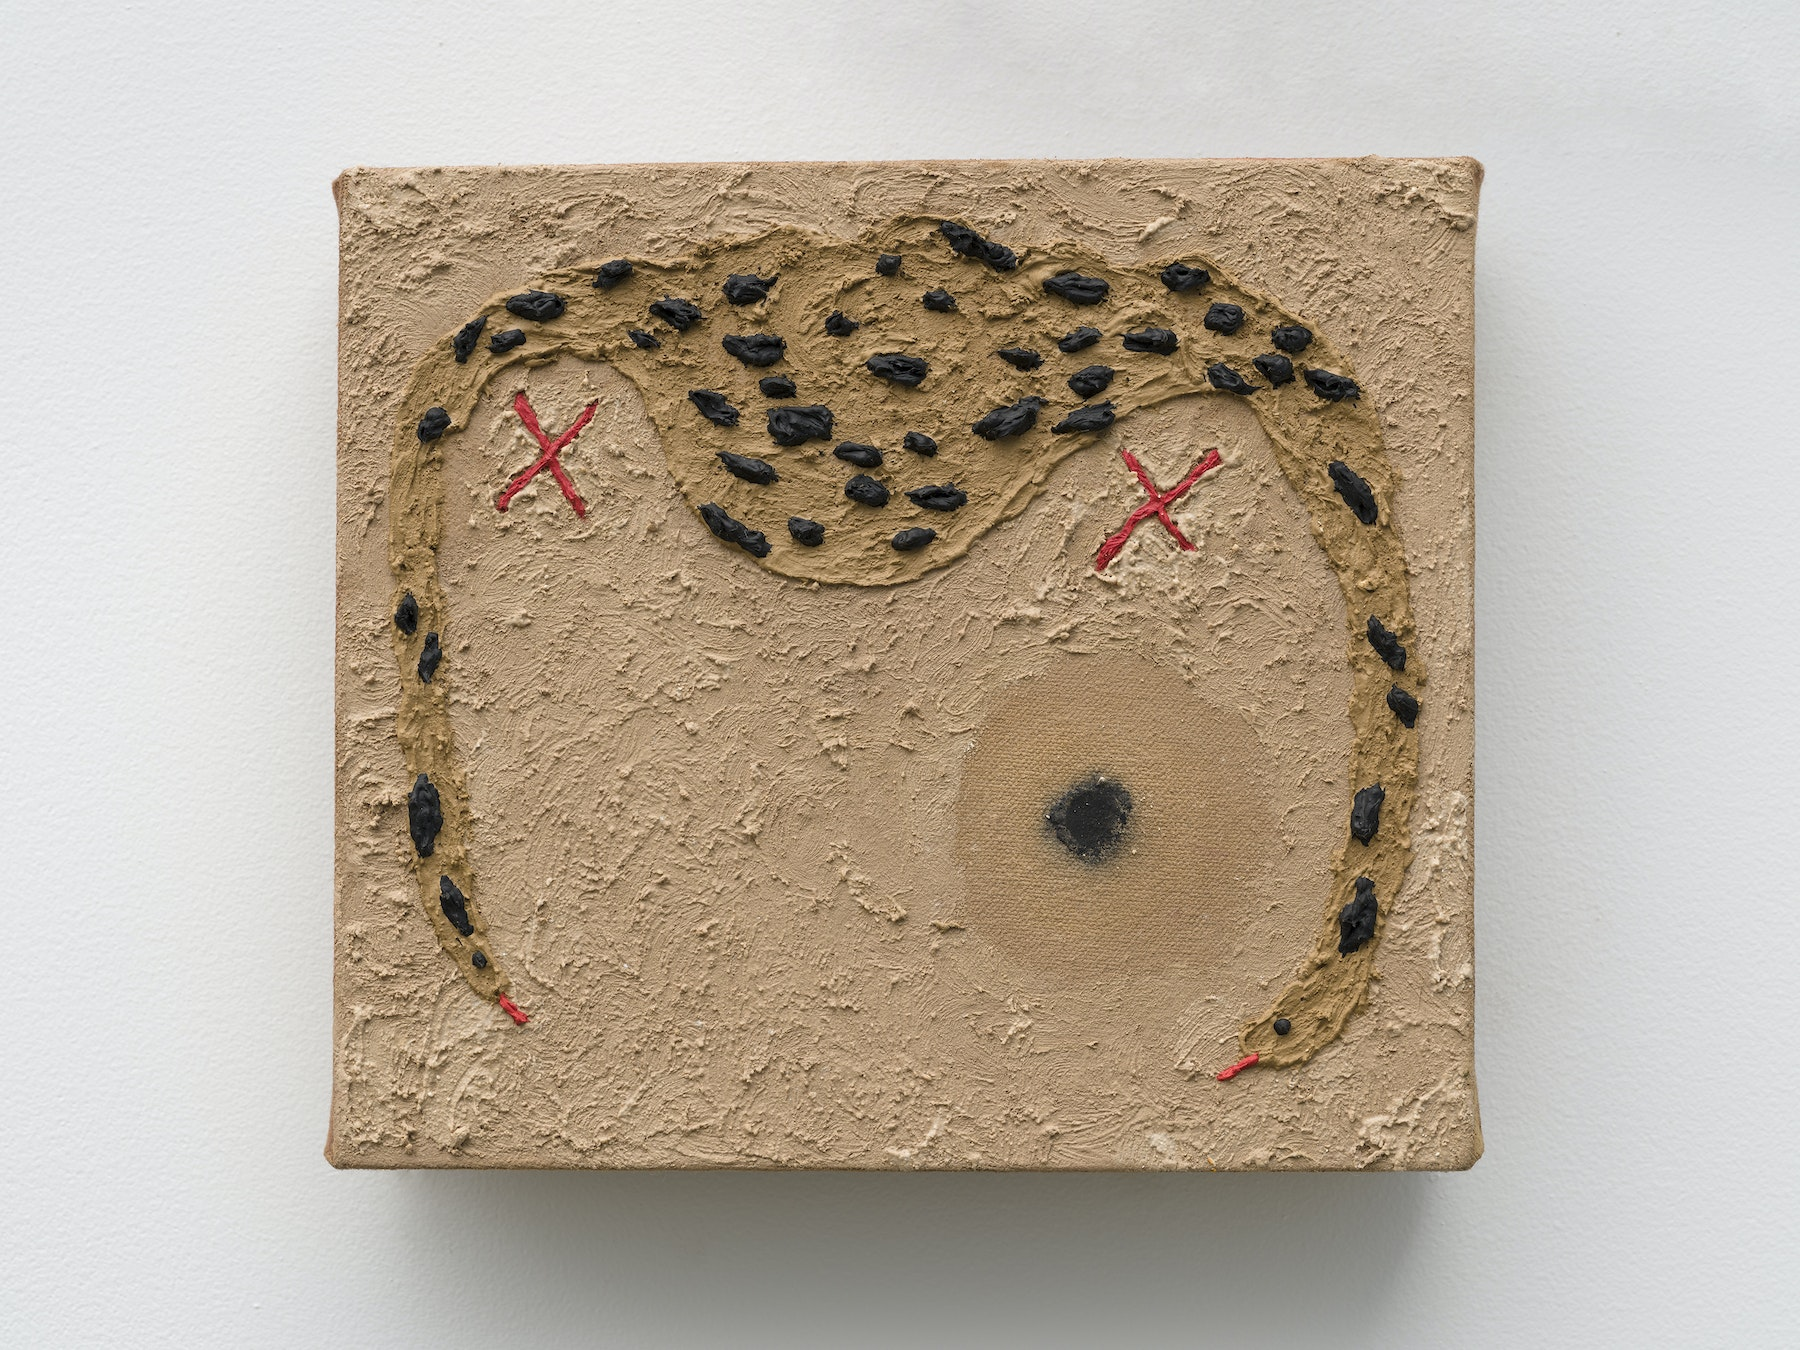 "Akina Cox ""Condition (XXV),"" 2020 Lime, bone, marble, ochre, linseed oil on tea dyed canvas 7.5 x 8.5 x 1.75"" [HxWxD] (19.05 x 21.59 x 4.45 cm) Inventory #WS1041 Photo credit: Jeff Mclane"